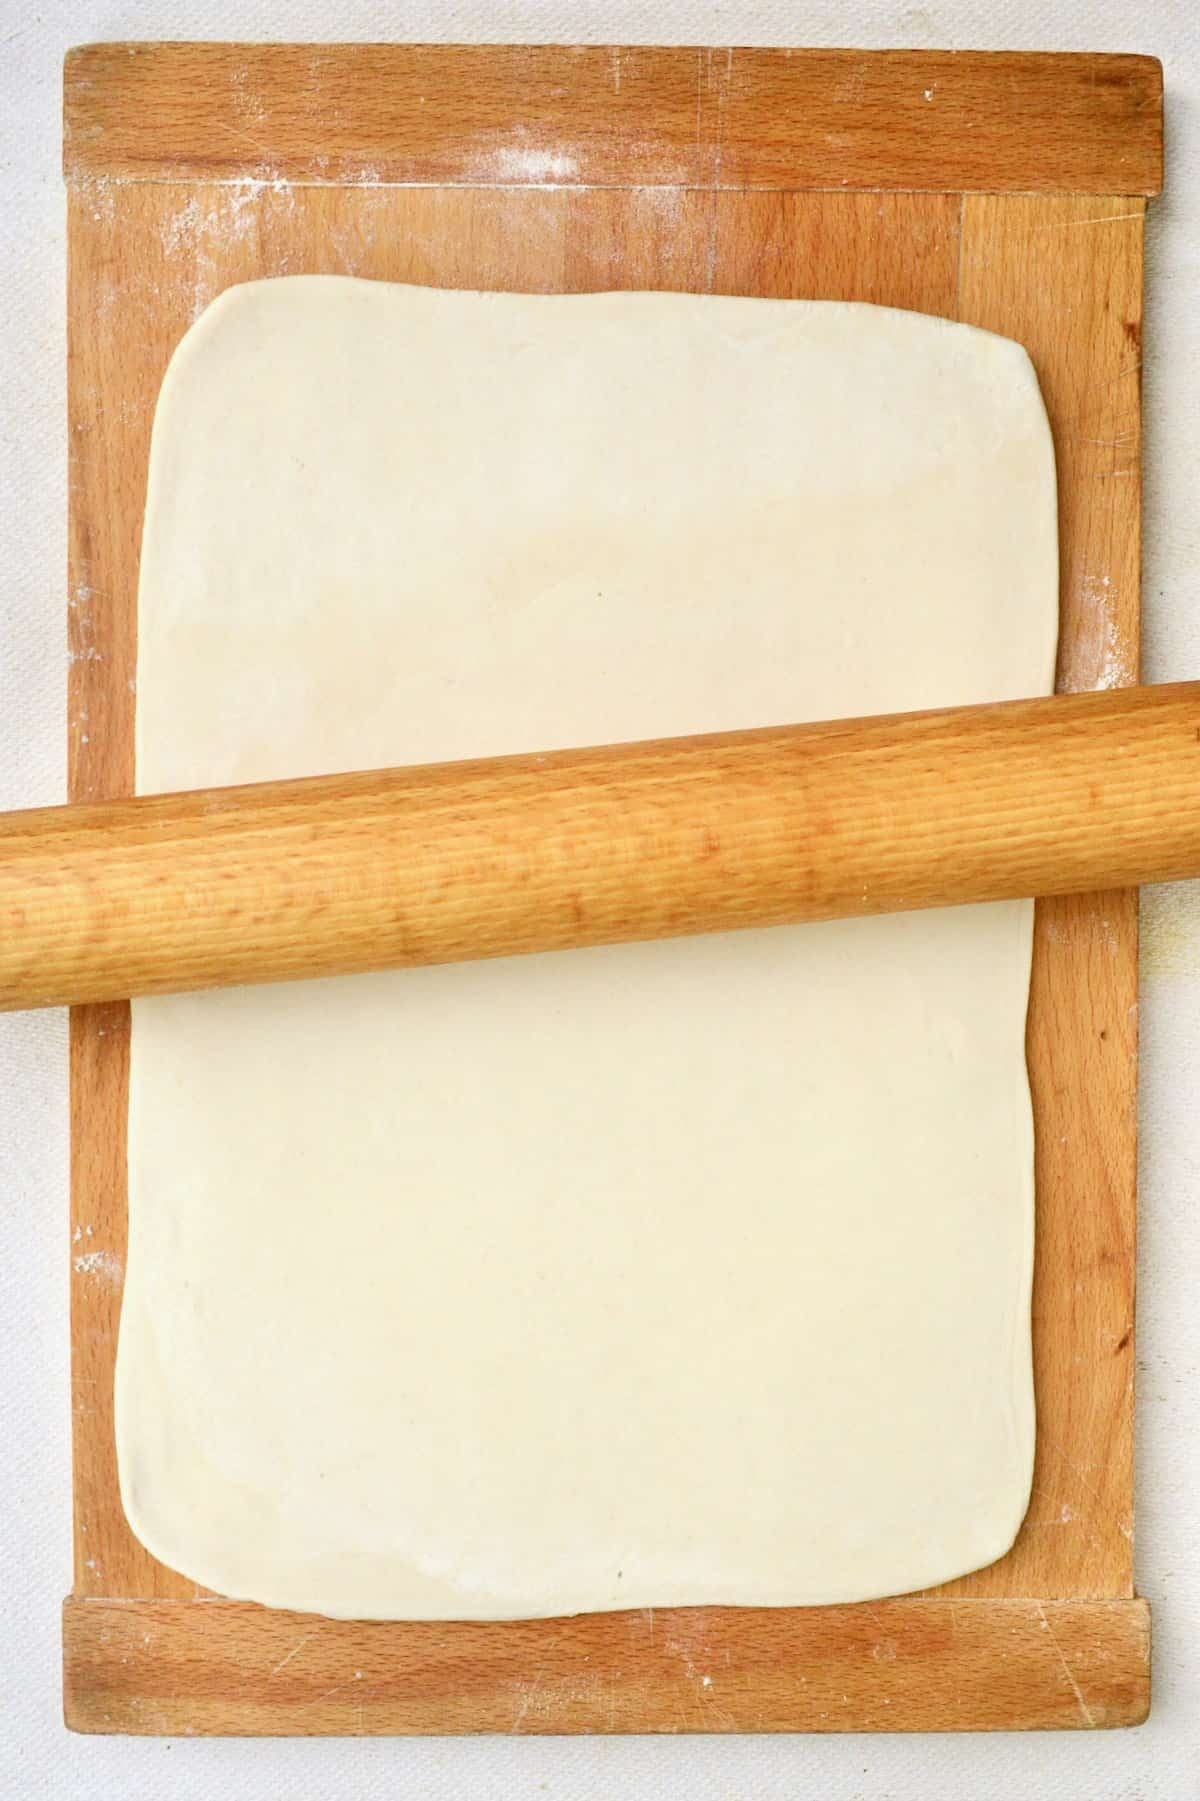 A rectangle of puff pastry being rolled out with a rolling pin.